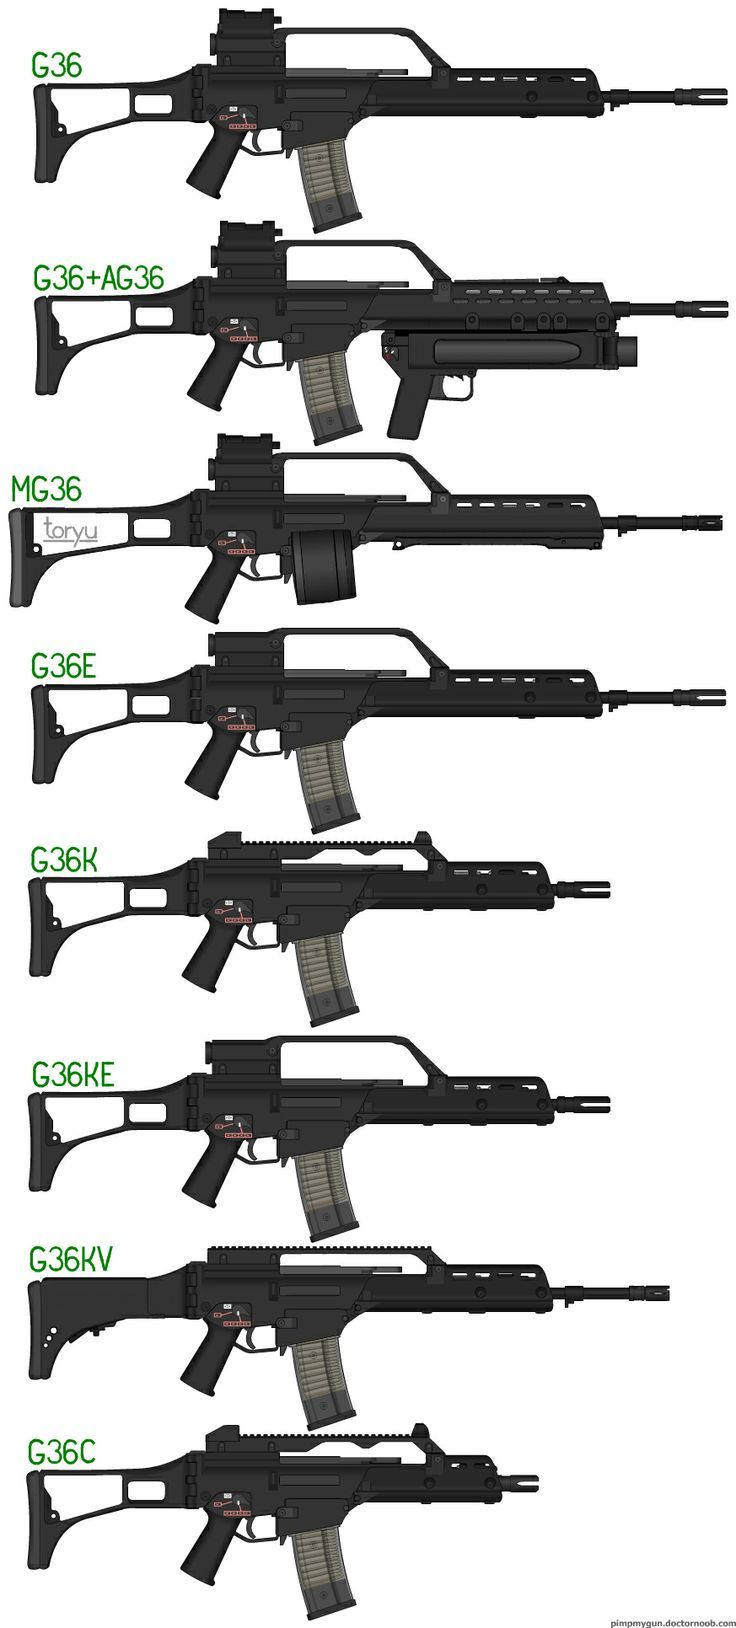 Hk G36 Assault Rifle G36 Assault Rifle Variants